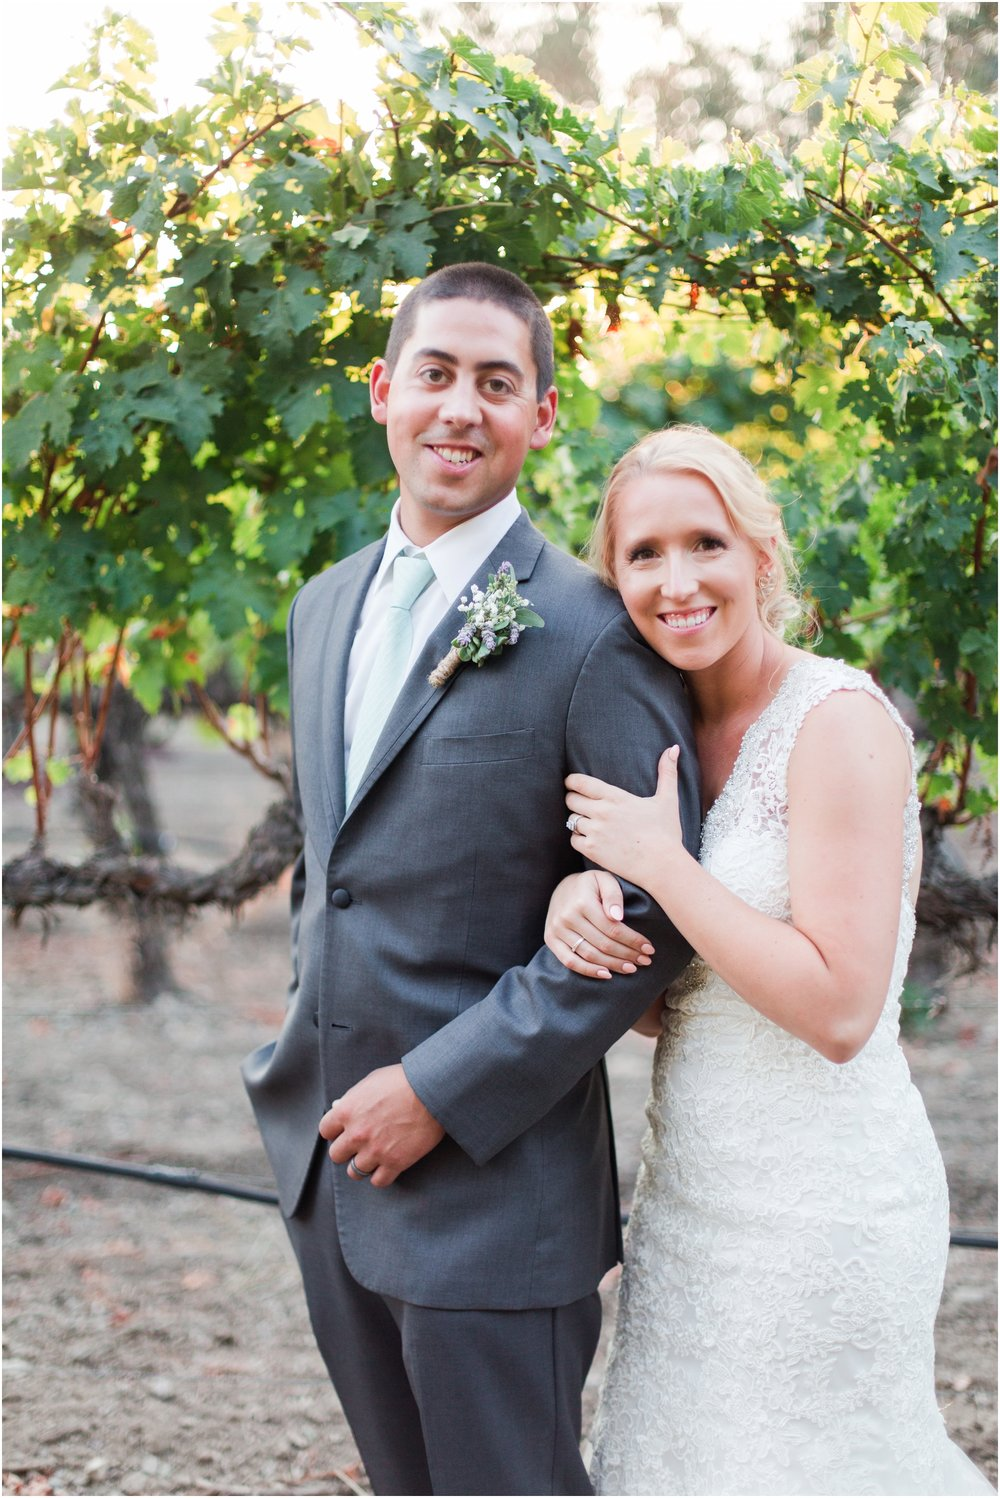 Retzlaff Winery wedding pictures by Briana Calderon Photography_2329.jpg